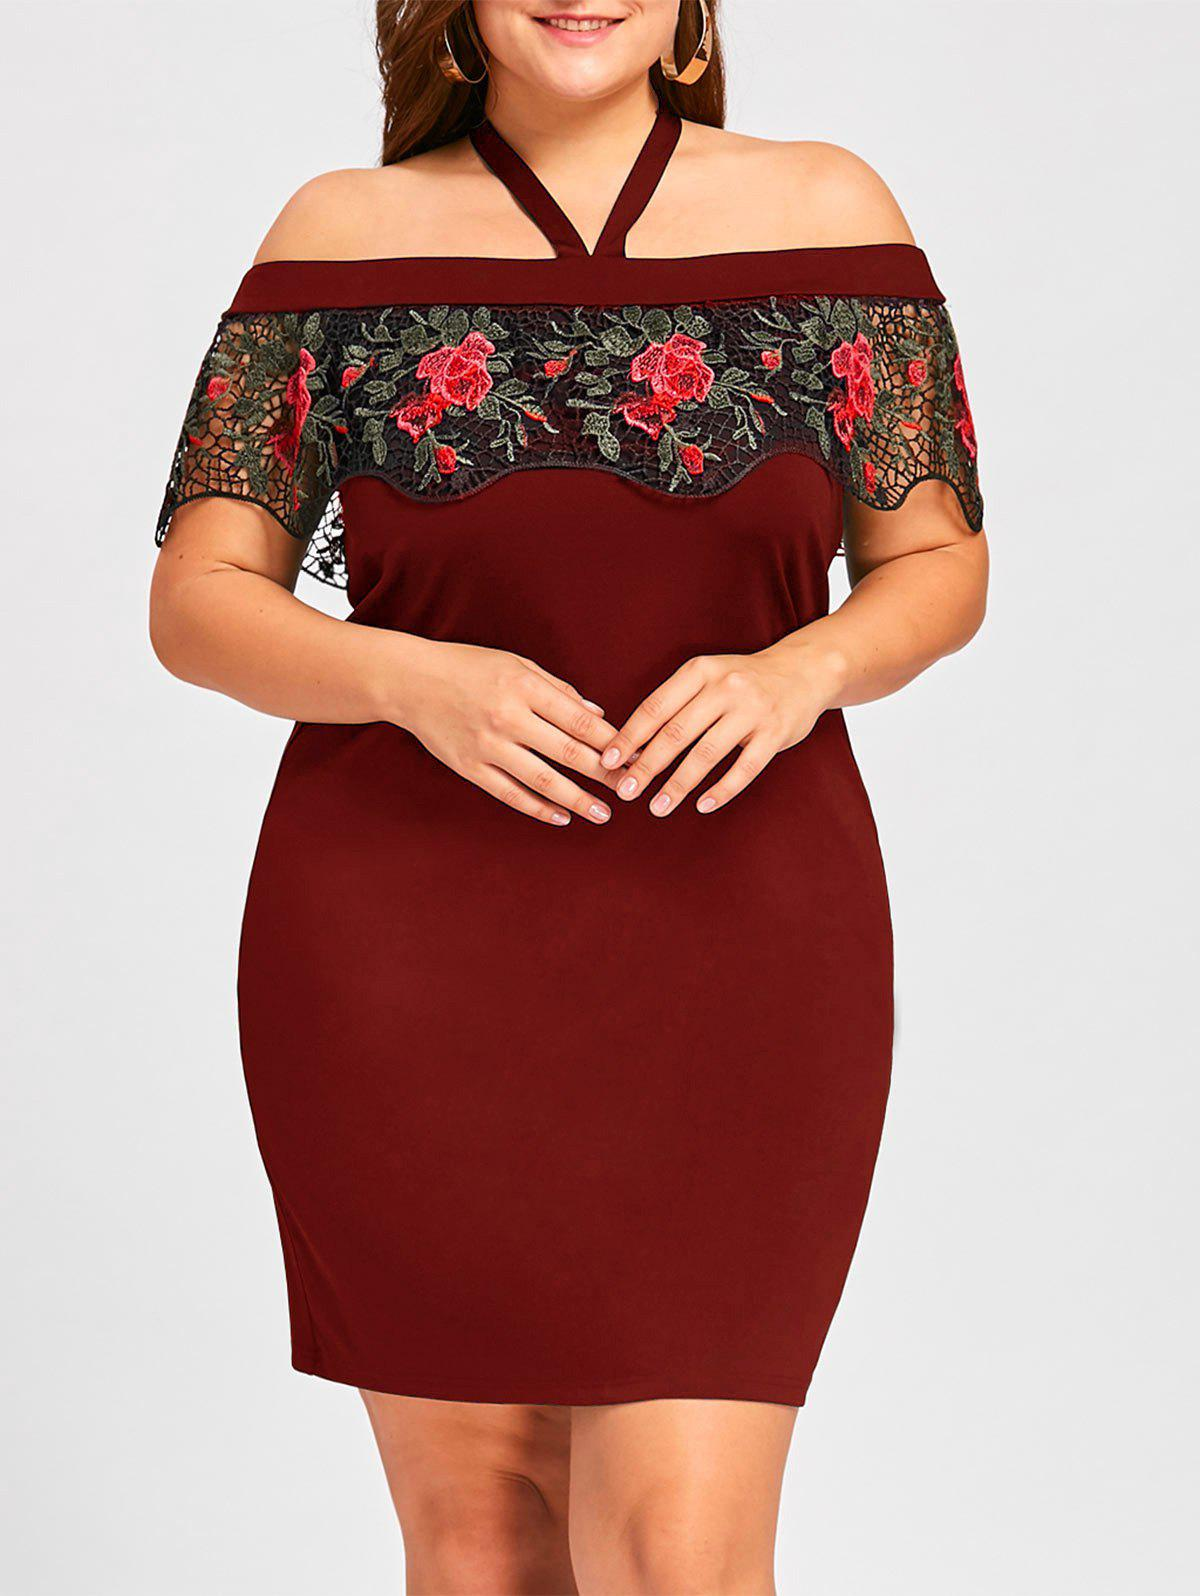 Plus Size Halter Embroidery Mini Tight DressWOMEN<br><br>Size: XL; Color: RED; Style: Brief; Material: Polyester,Spandex; Silhouette: Sheath; Dresses Length: Mini; Neckline: Halter; Sleeve Length: Short Sleeves; Embellishment: Embroidery,Lace; Pattern Type: Floral; With Belt: No; Season: Fall,Spring,Summer; Weight: 0.3100kg; Package Contents: 1 x Dress;